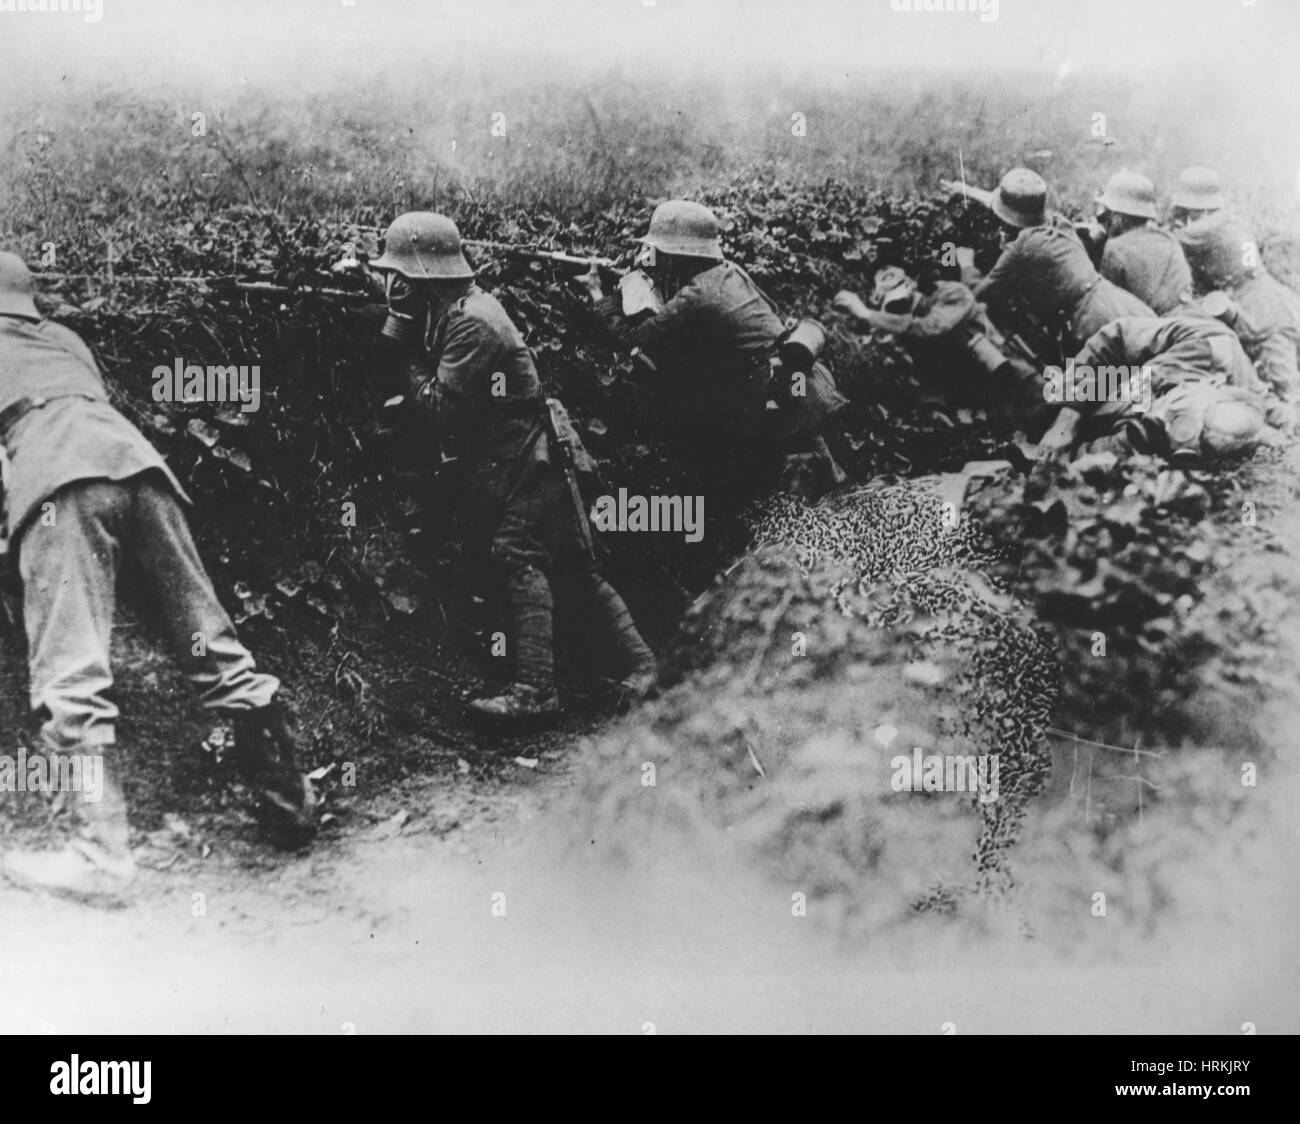 WWI, German Trench - Stock Image